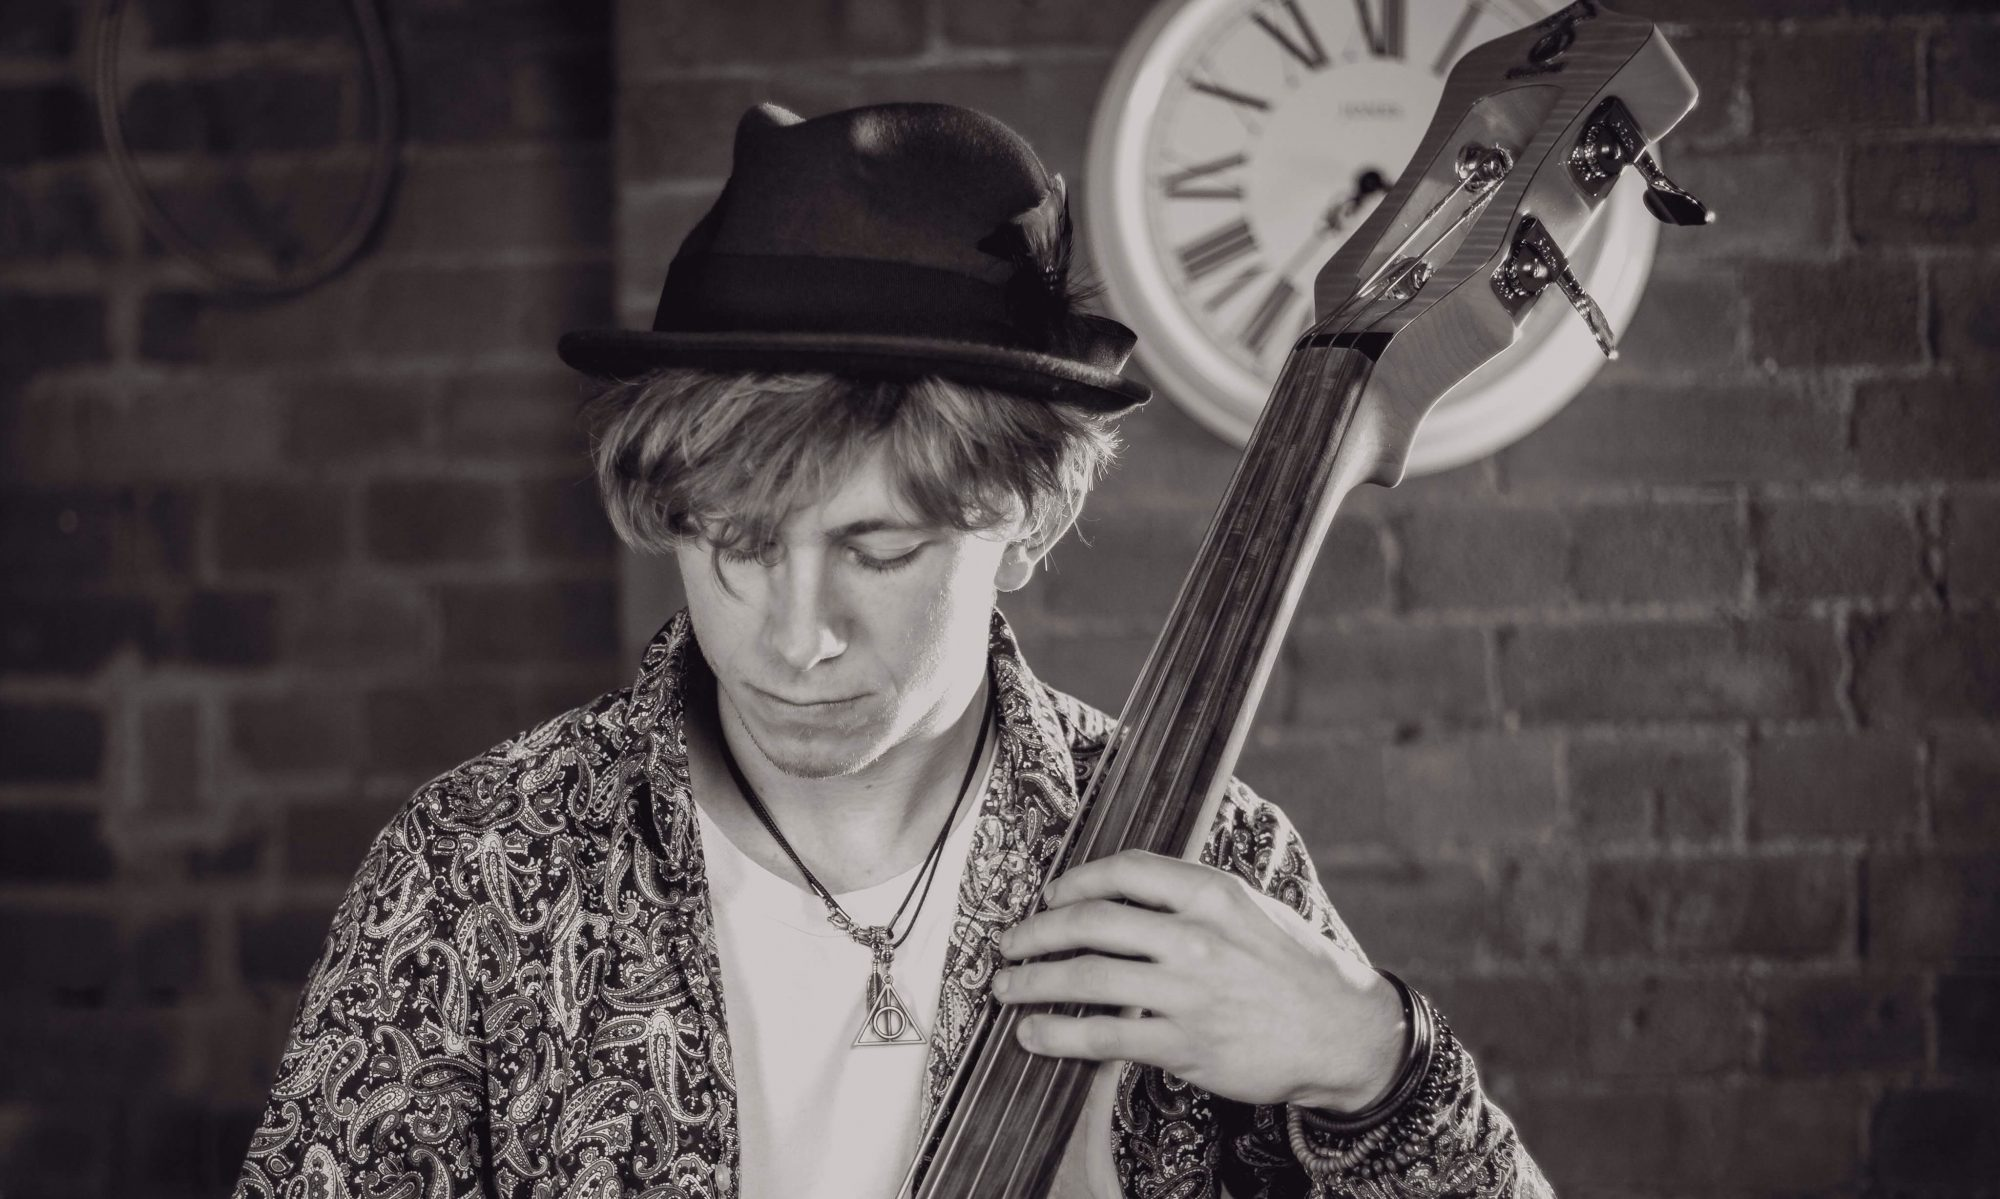 George Price Bass